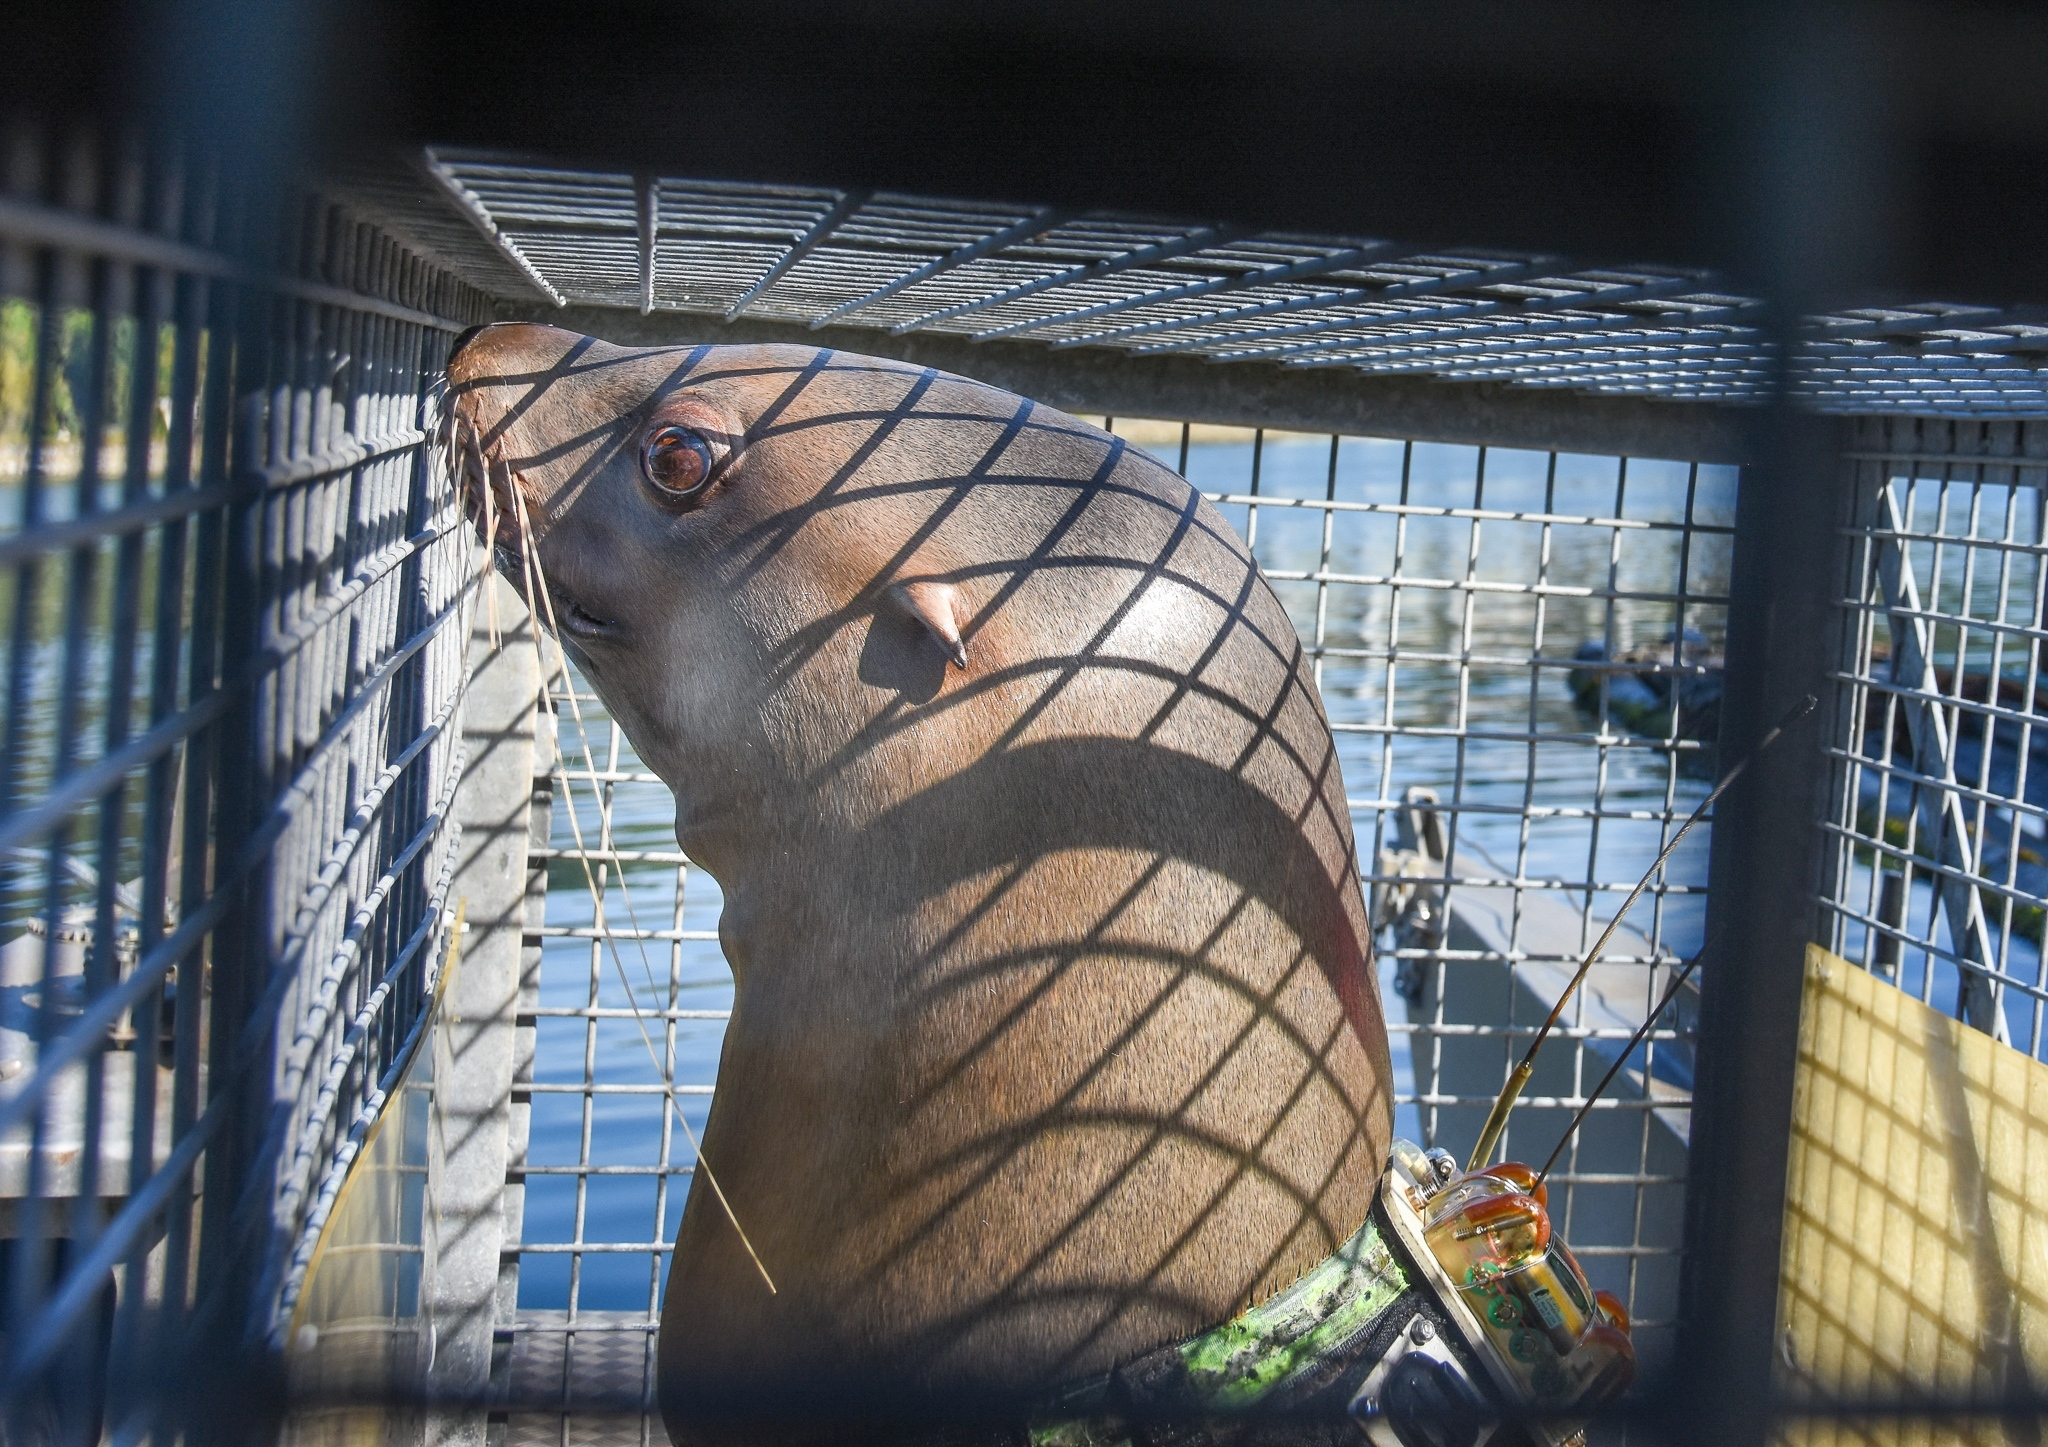 After 16 years at the research station, the four Steller sea lions will be transferred back in to ca